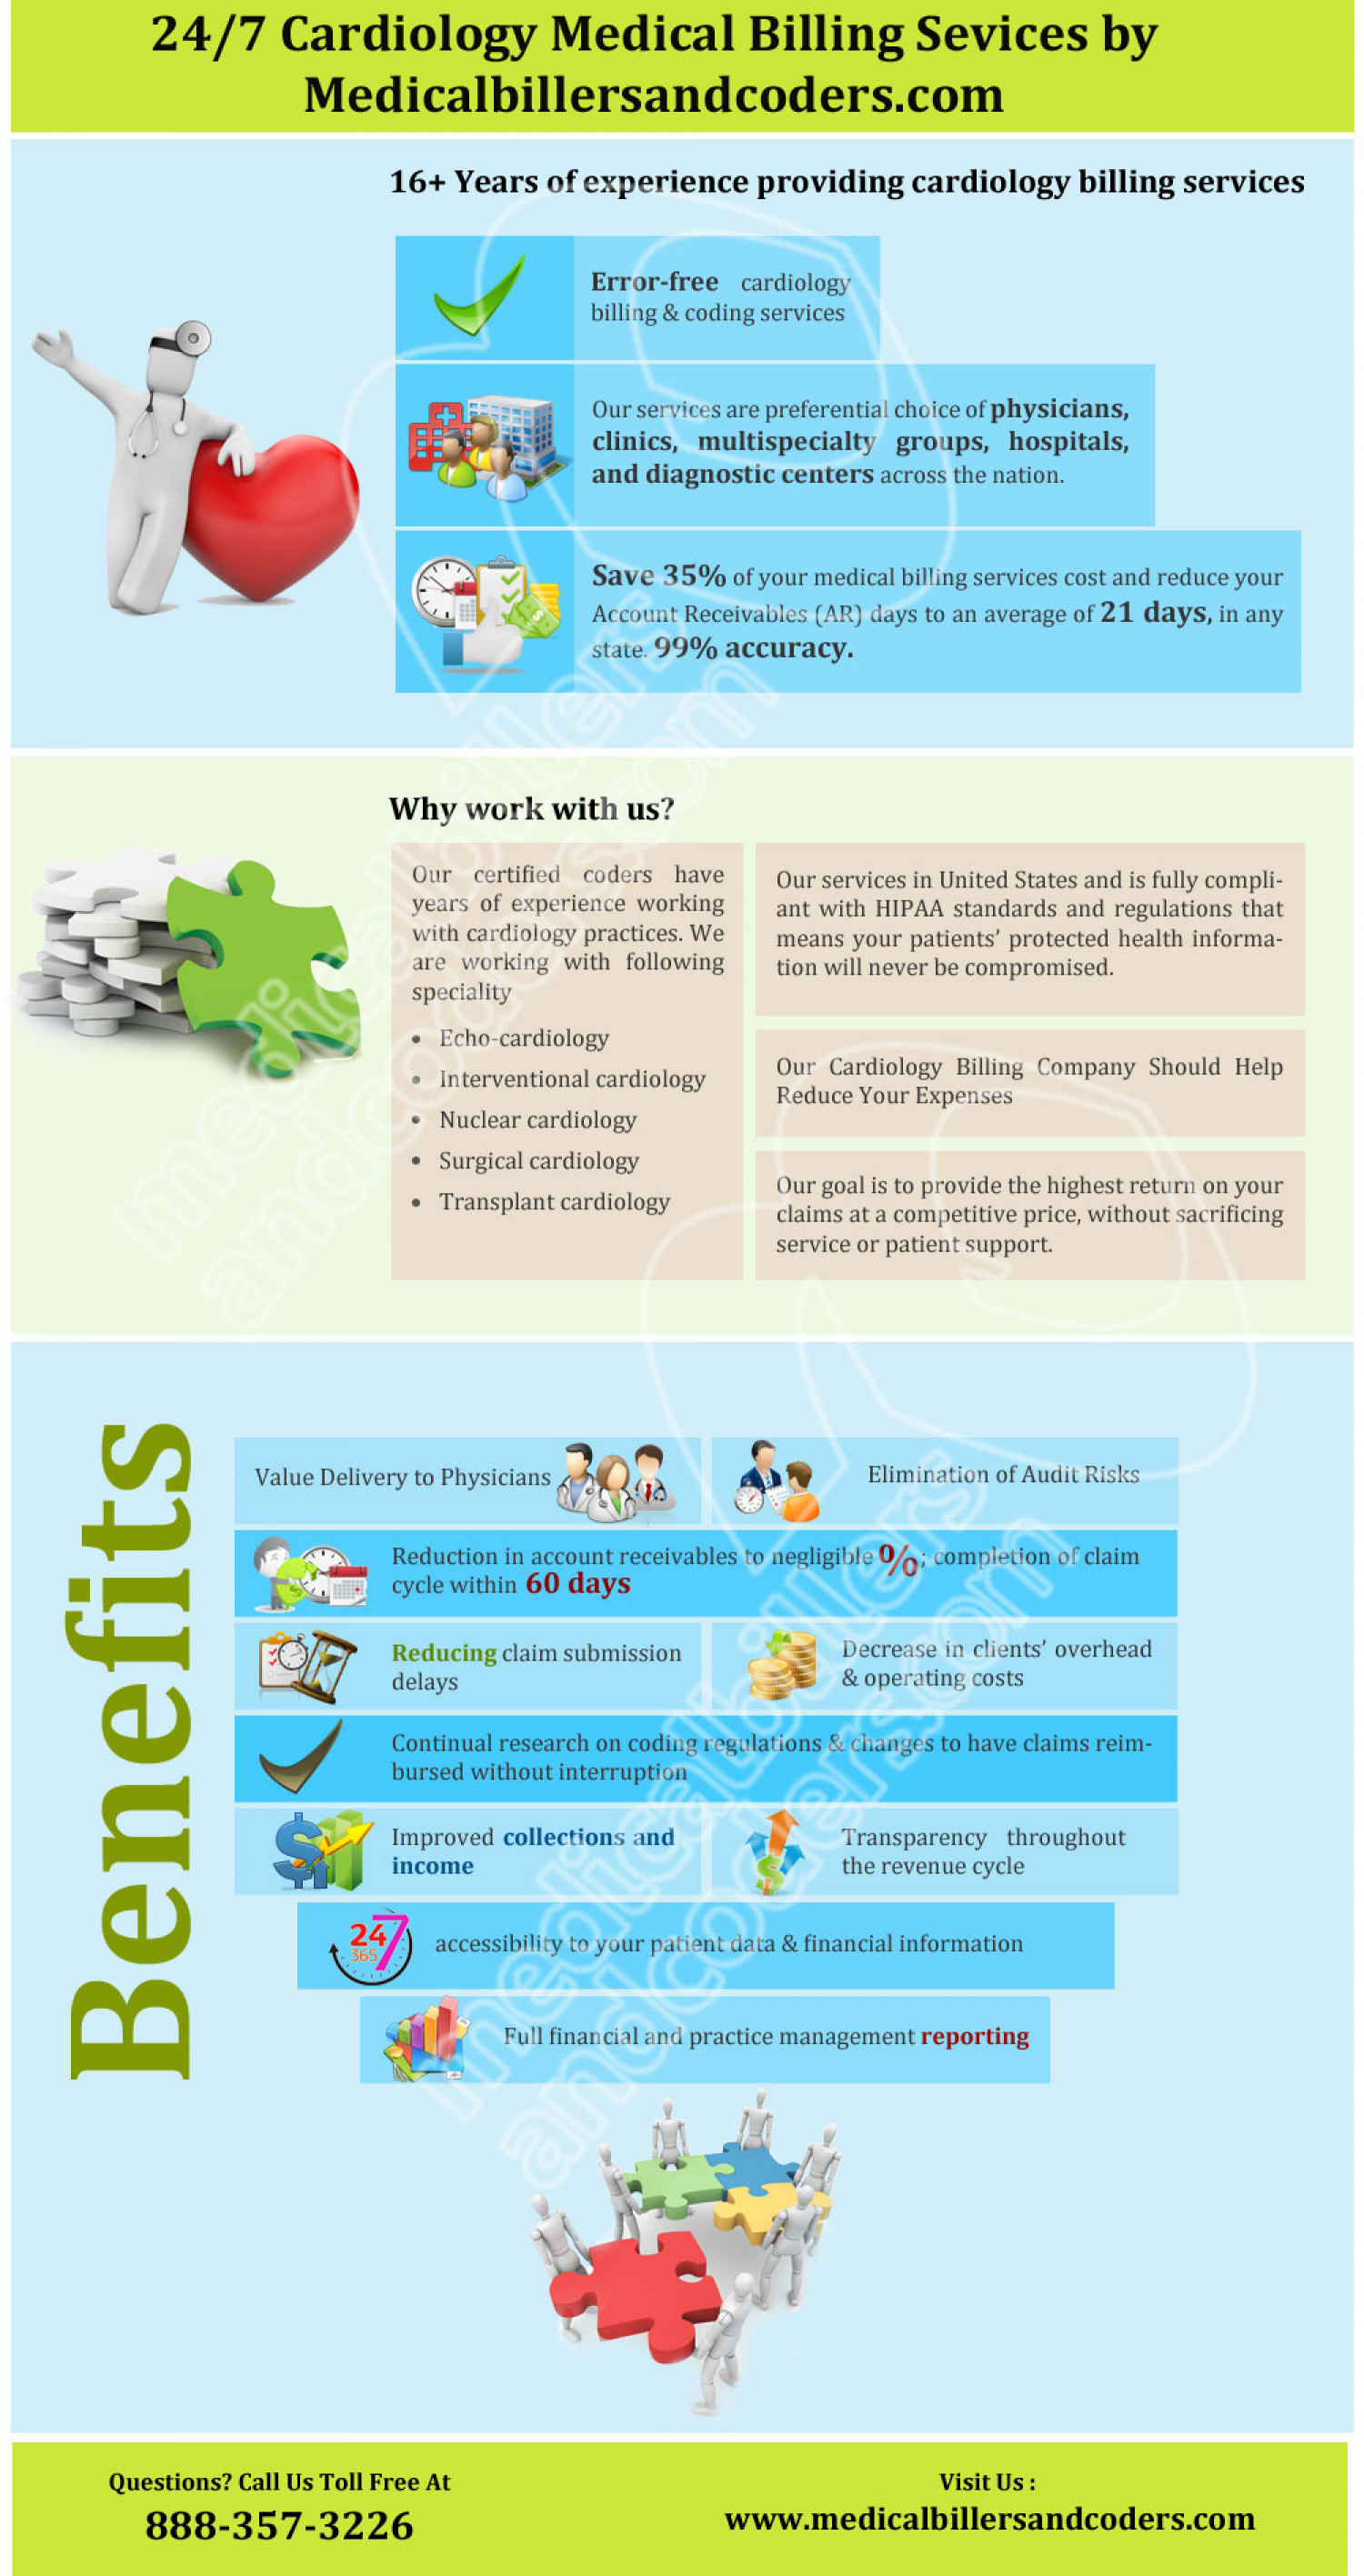 Cardiology Medical Billing Info graphic. Infographic